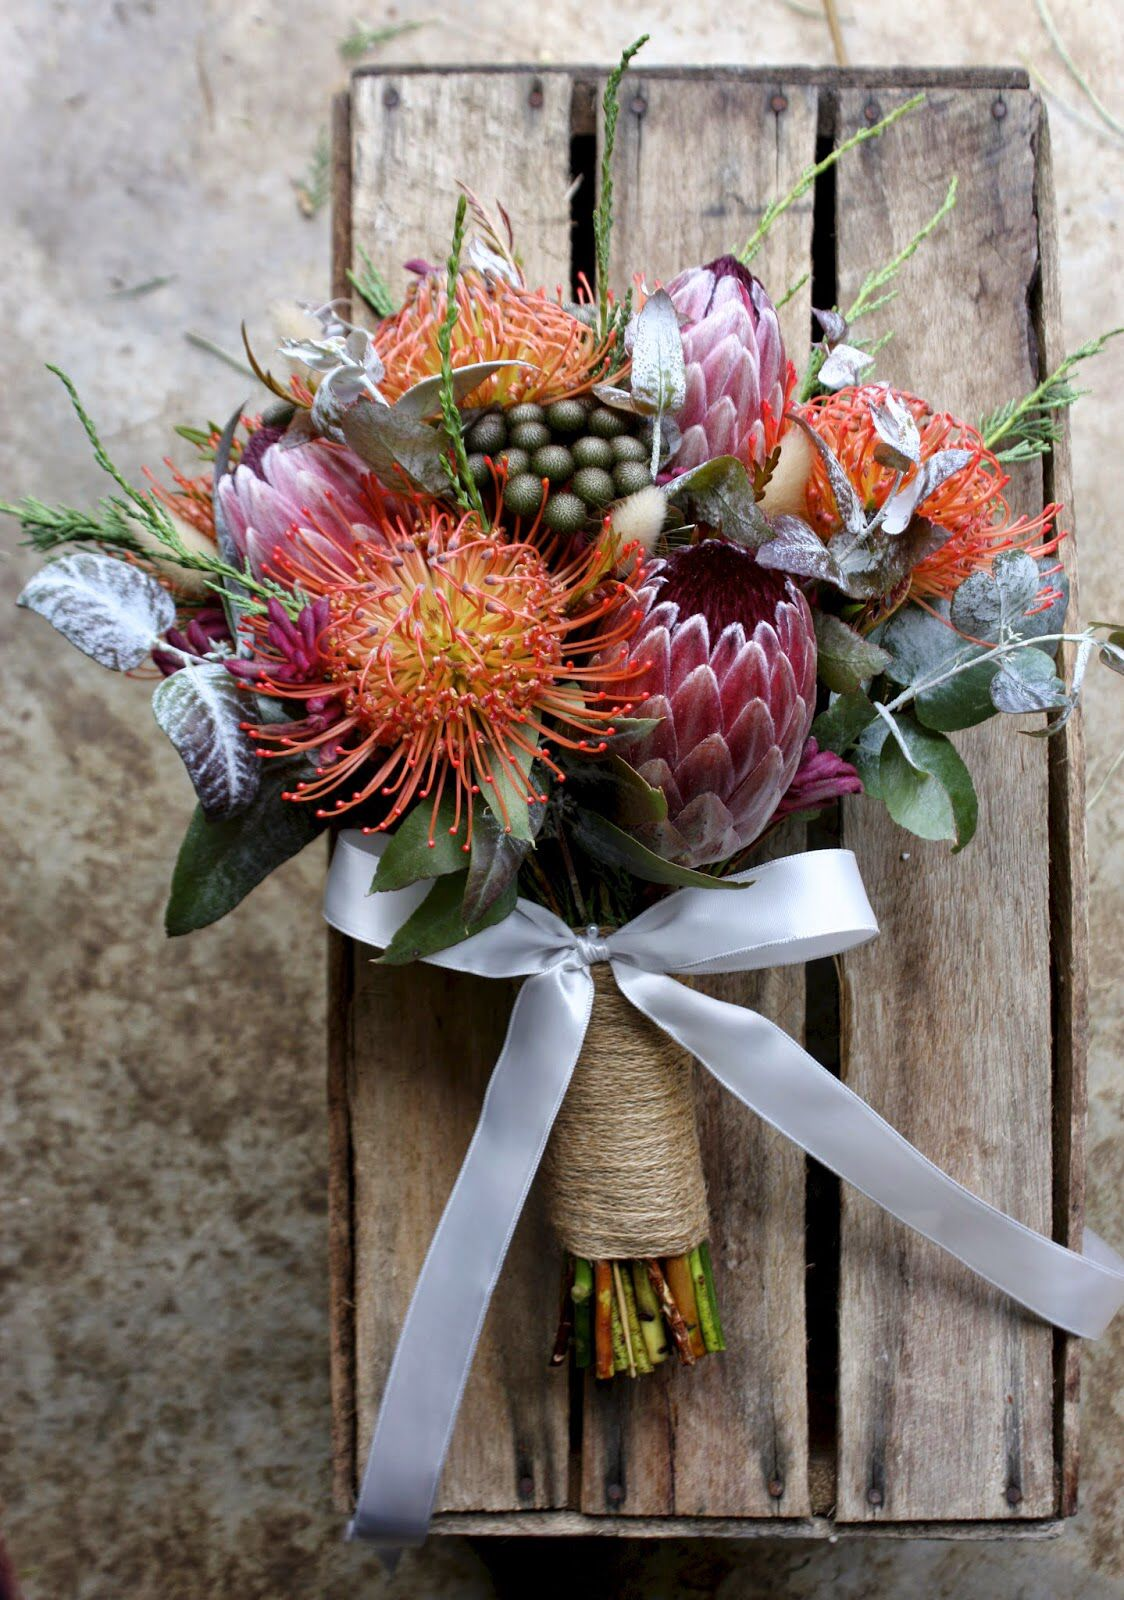 Australian native bouquet this mixed with a few other non